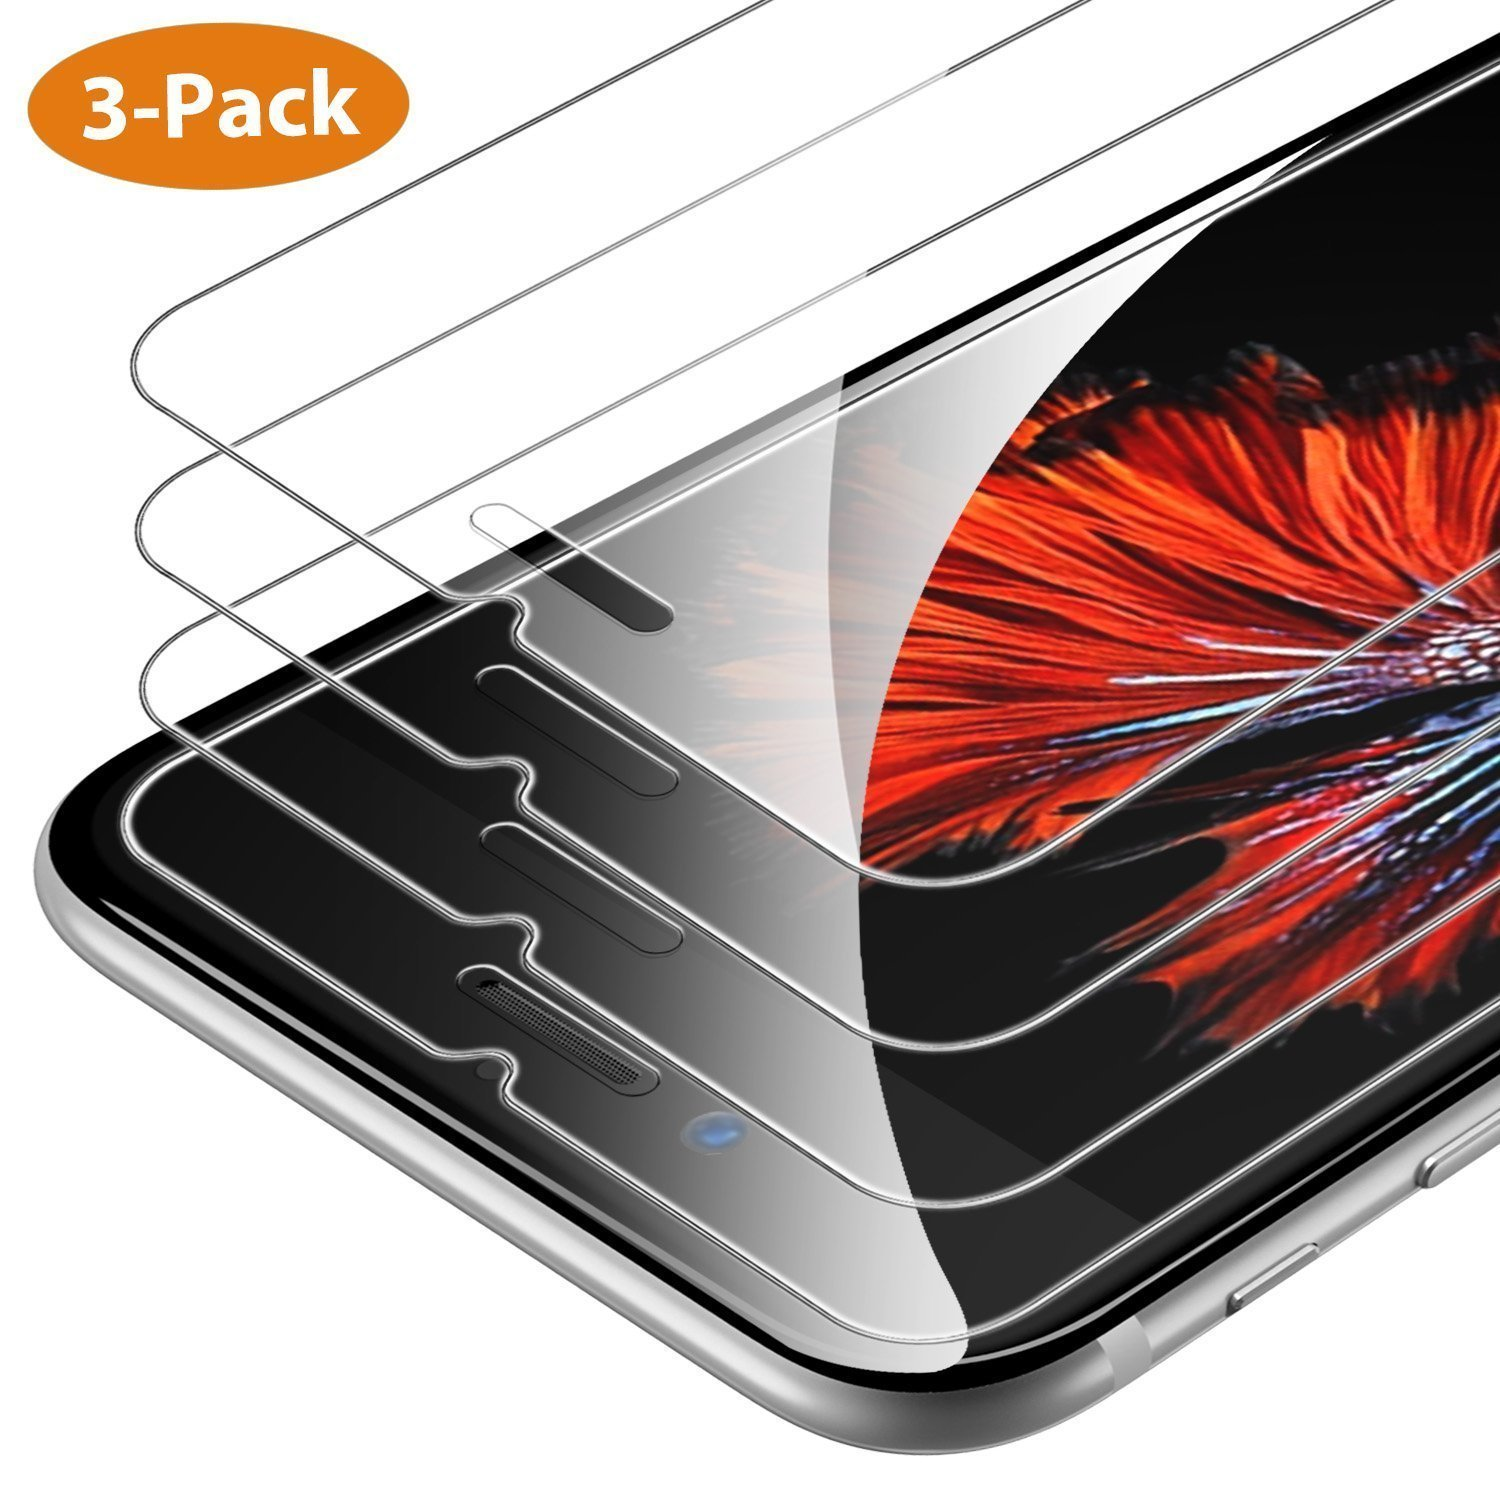 ... iPhone 6s Plus / 6 Plus 3-Pack HD 9H de dureza 2.5D Cristal Templado para 5.5